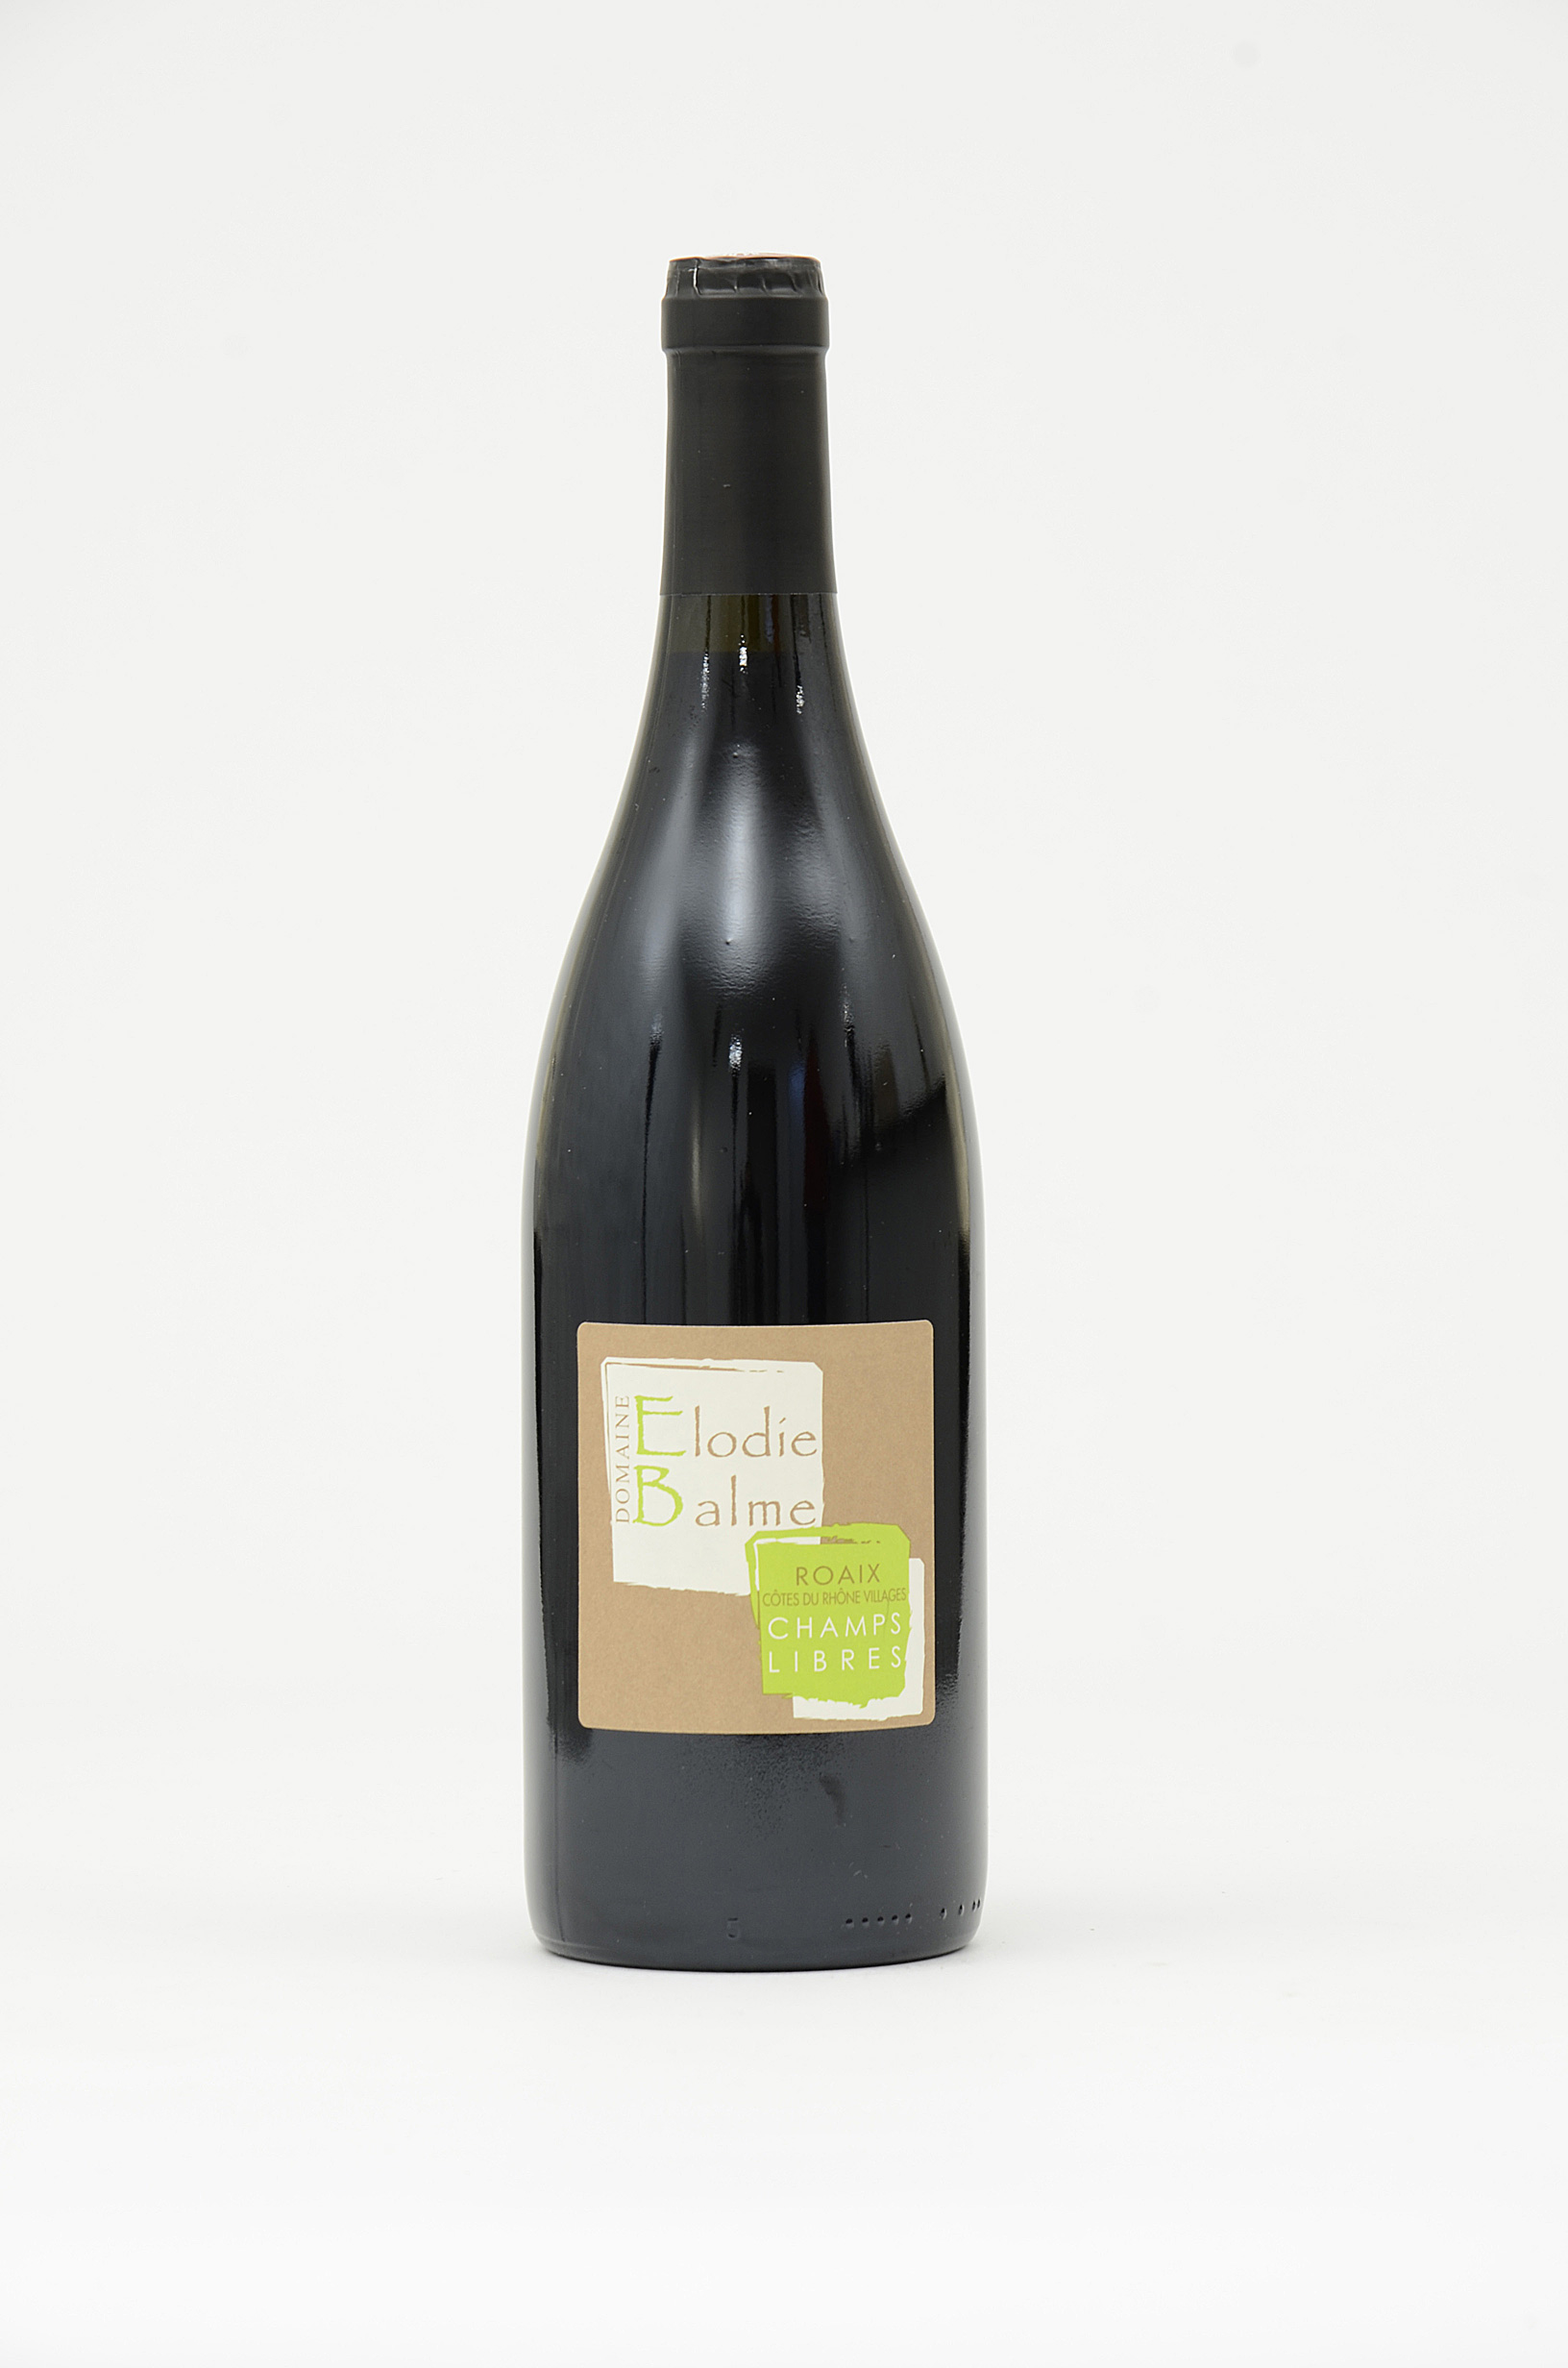 CDR Villages - Roaix Elodie Balme Champs Libre 2015 75 cl Rouge